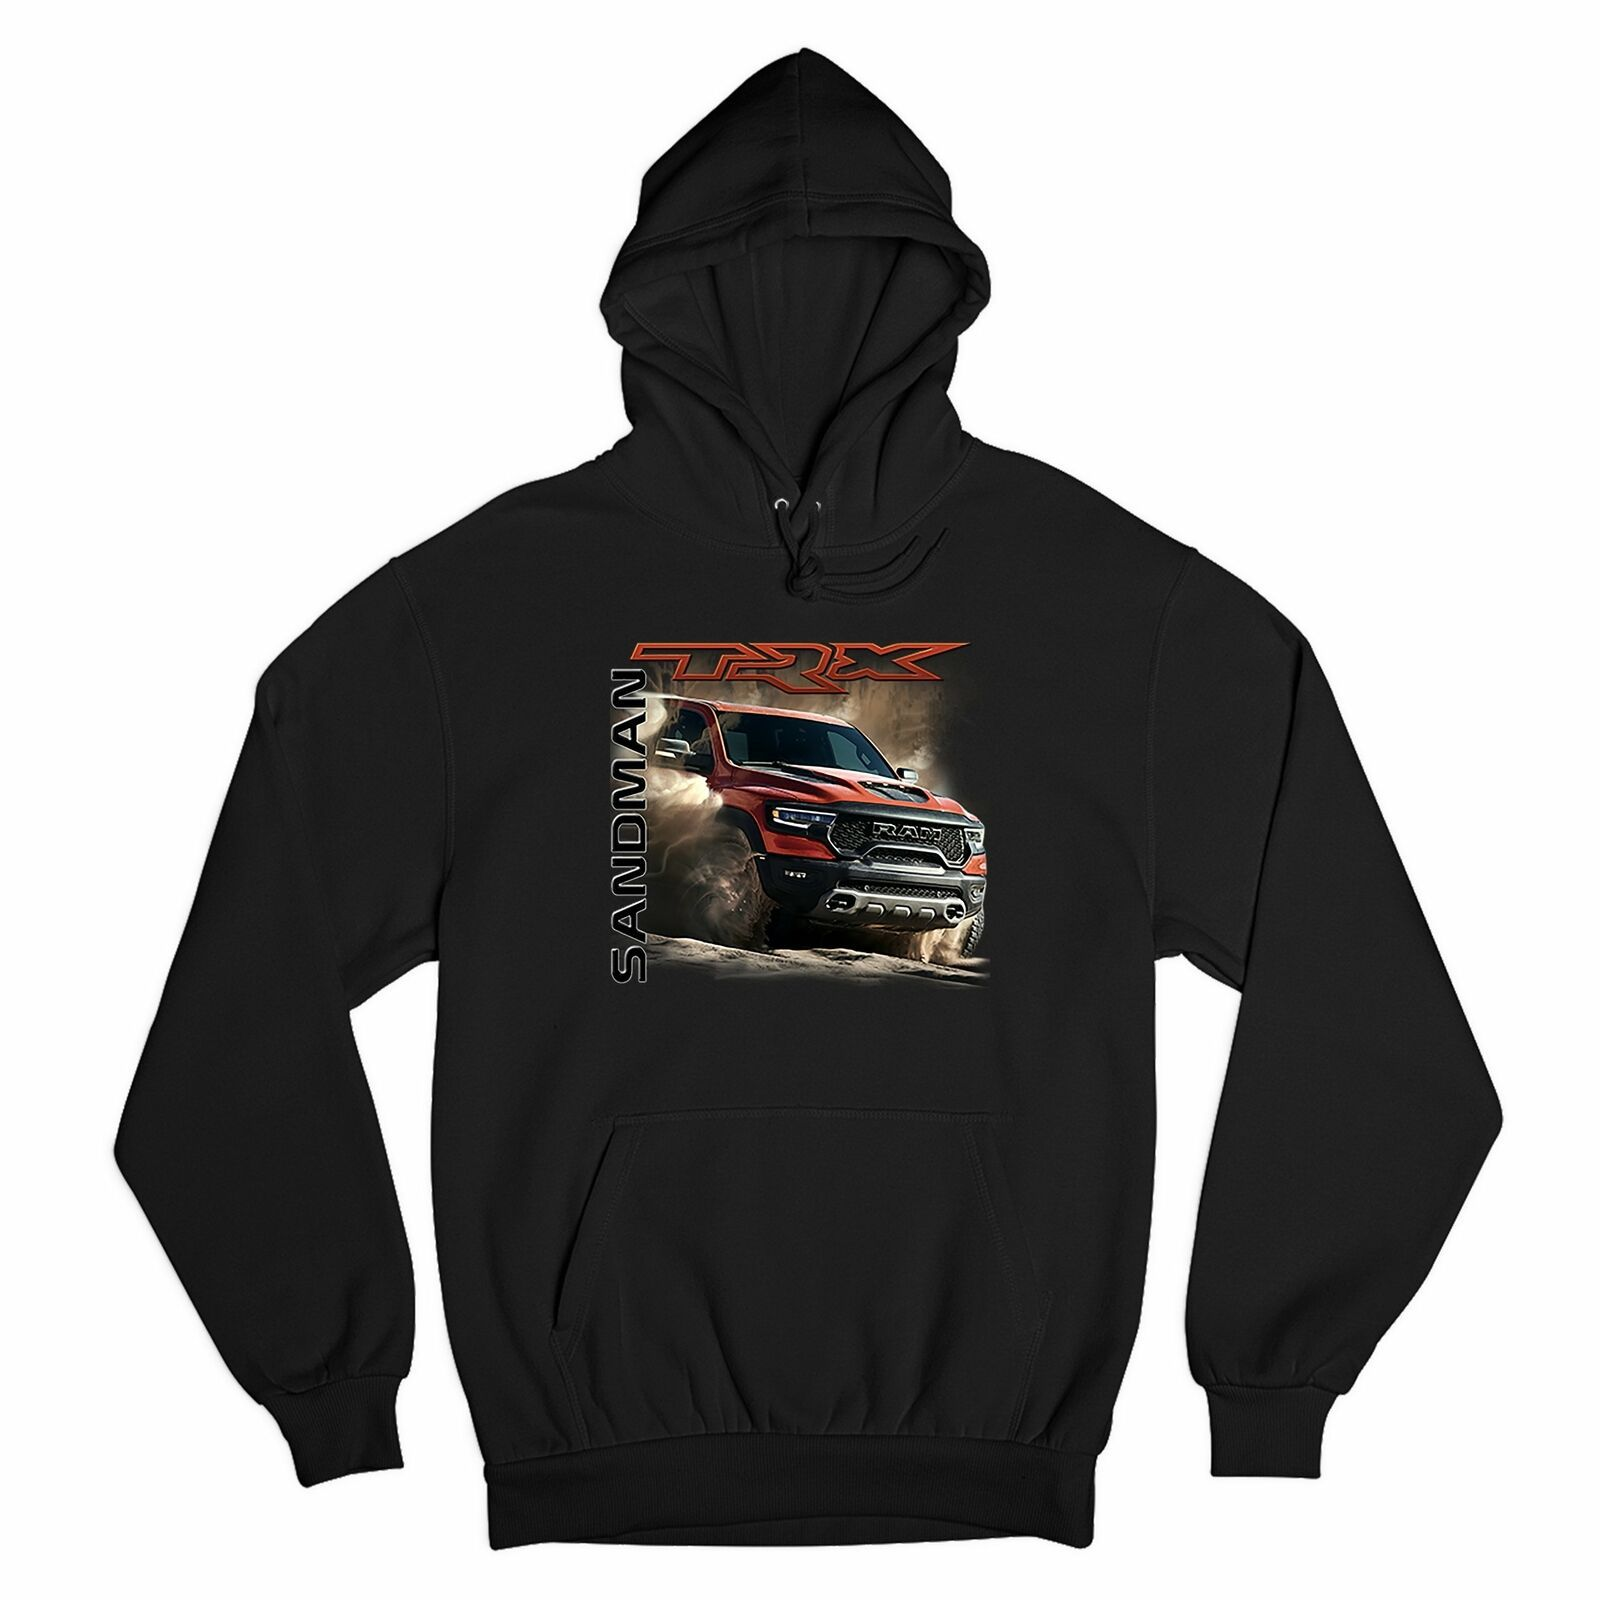 Primary image for RAM 1500 TRX Sandman Sweatshirt Off-Road V8 Pickup Truck Licensed Hoodie